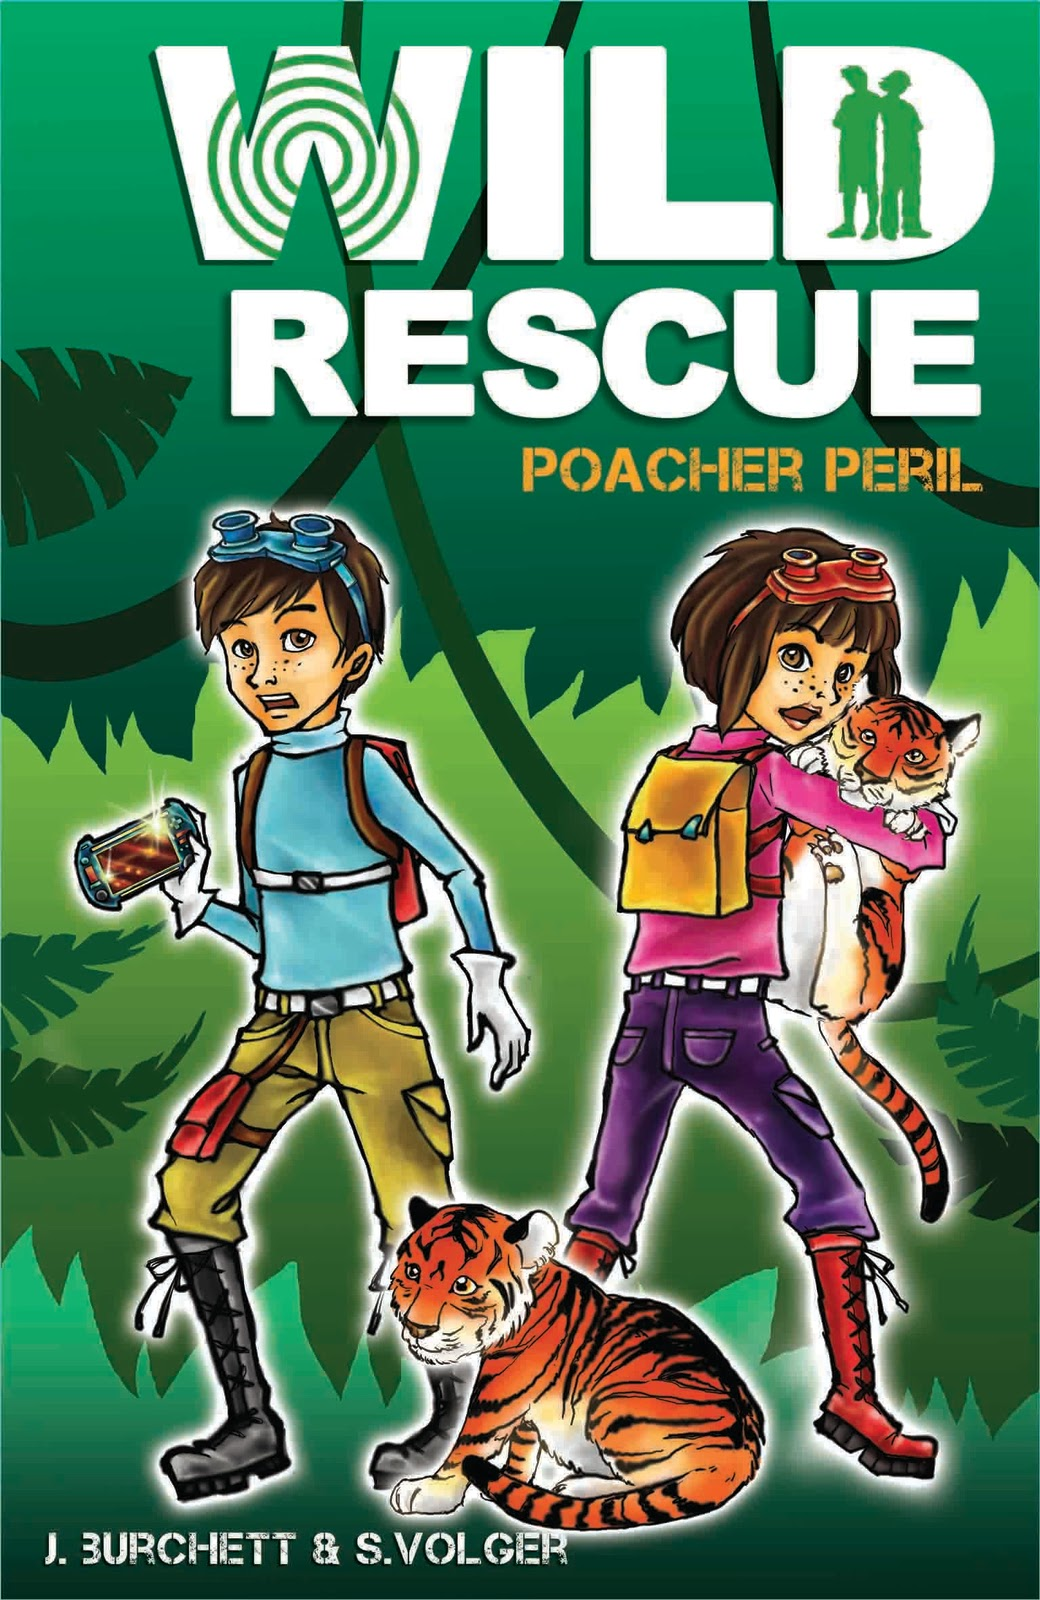 relations of rescue book review